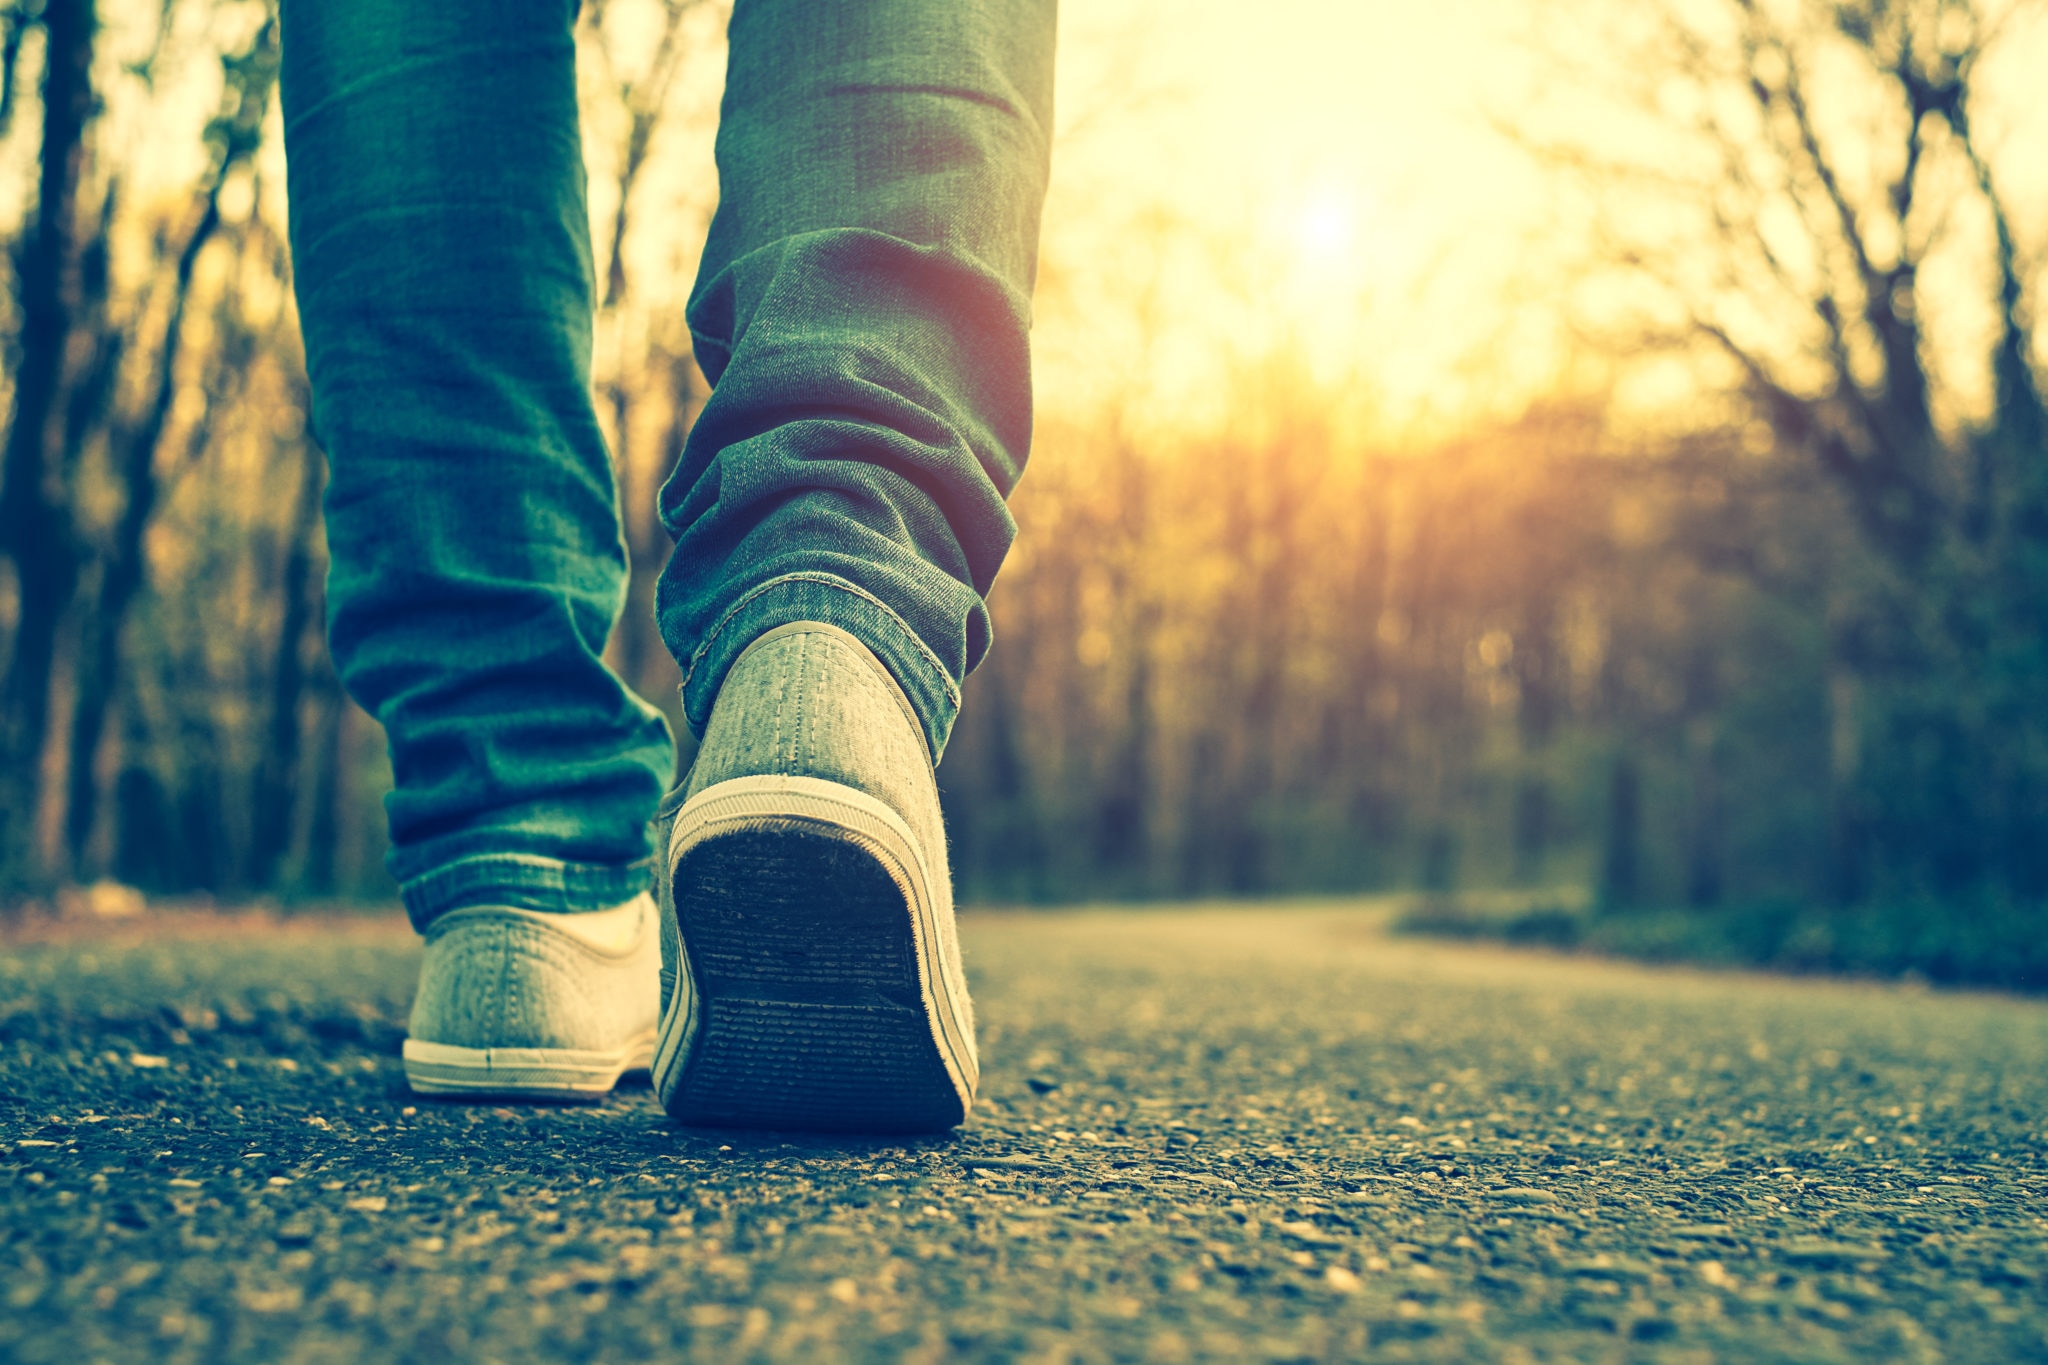 Stop reading about improving your health and take action: Go for a walk right now